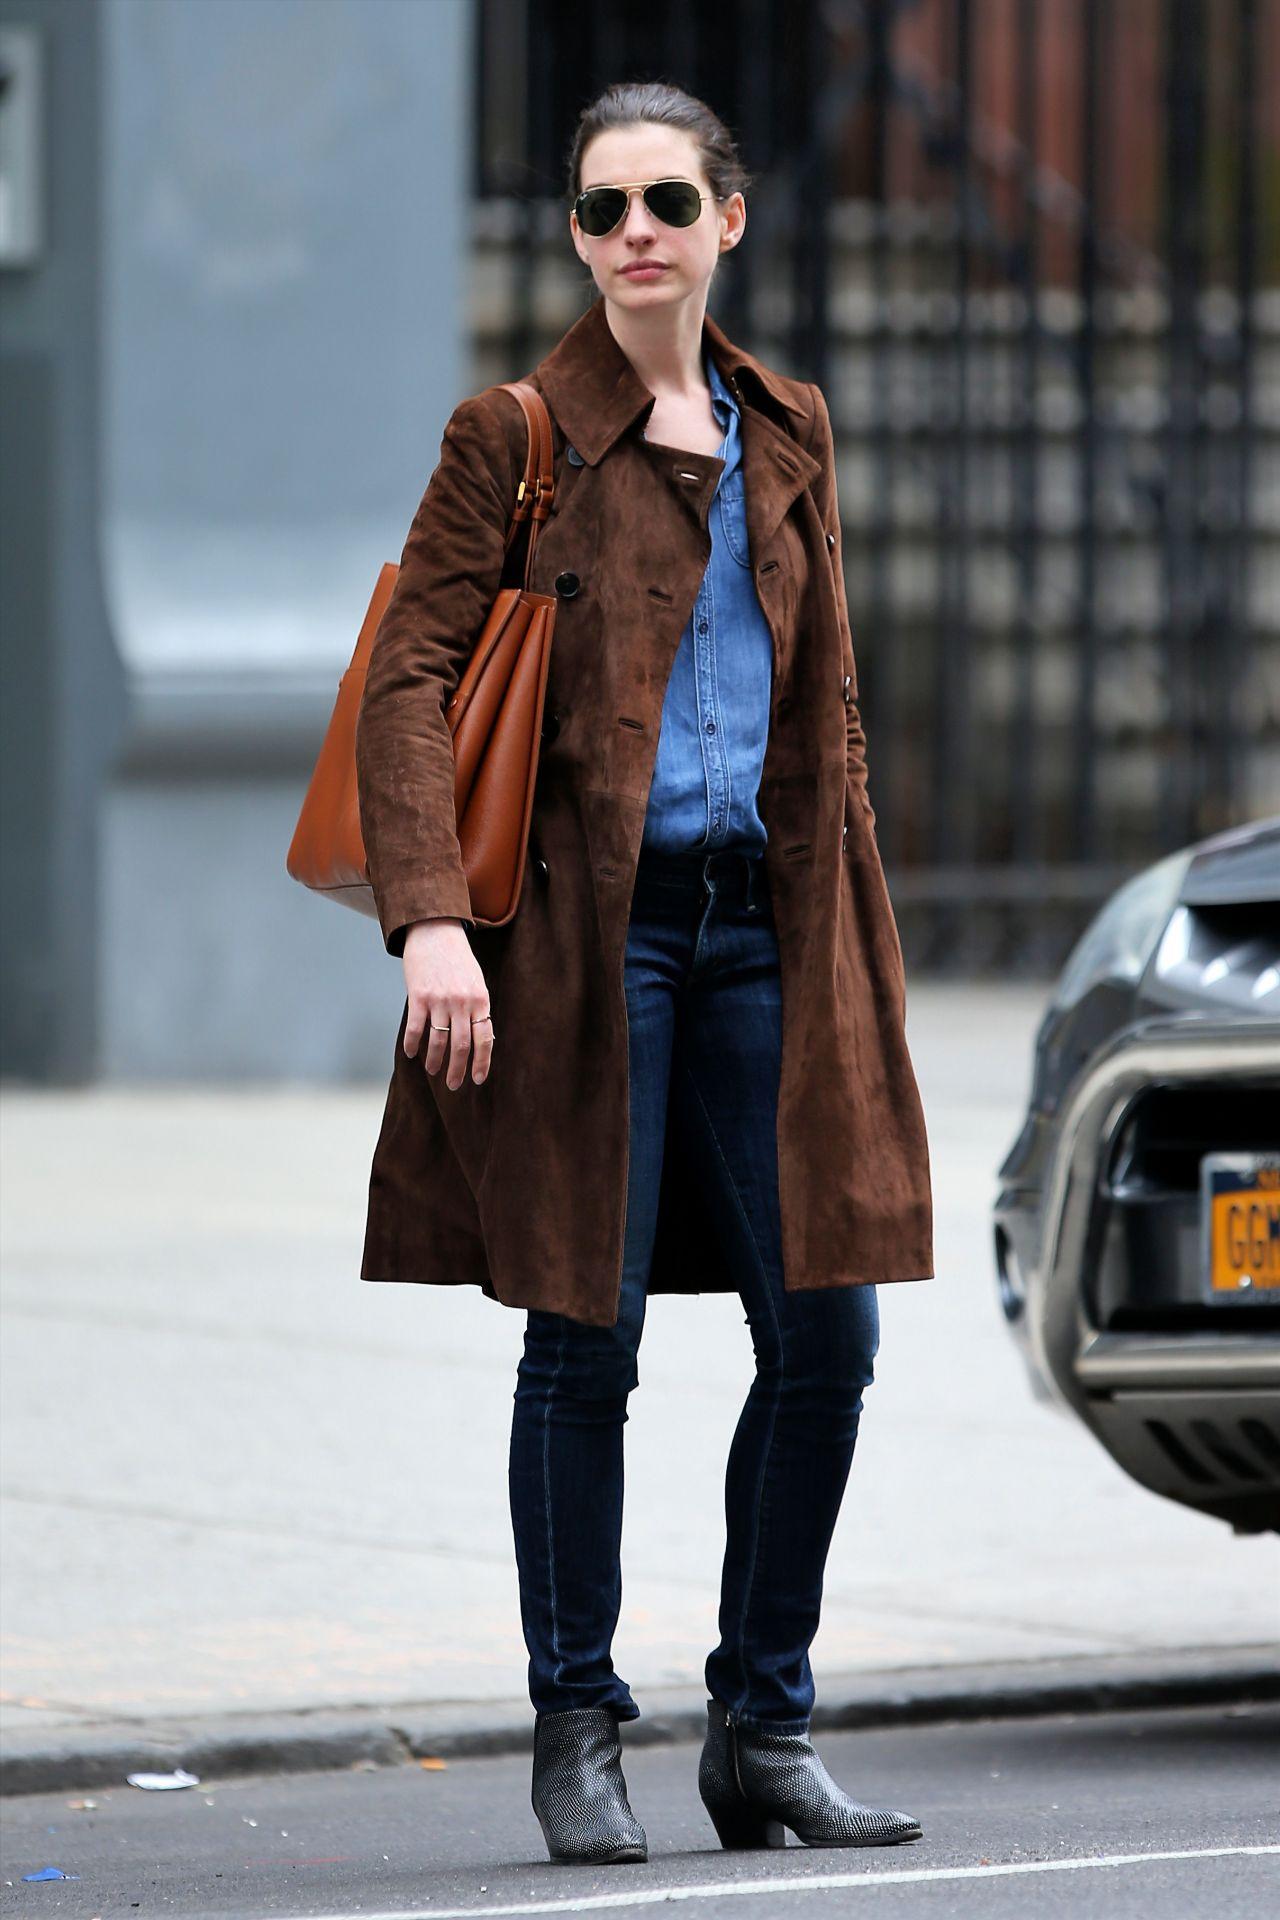 anne hathaway casual style - photo #3